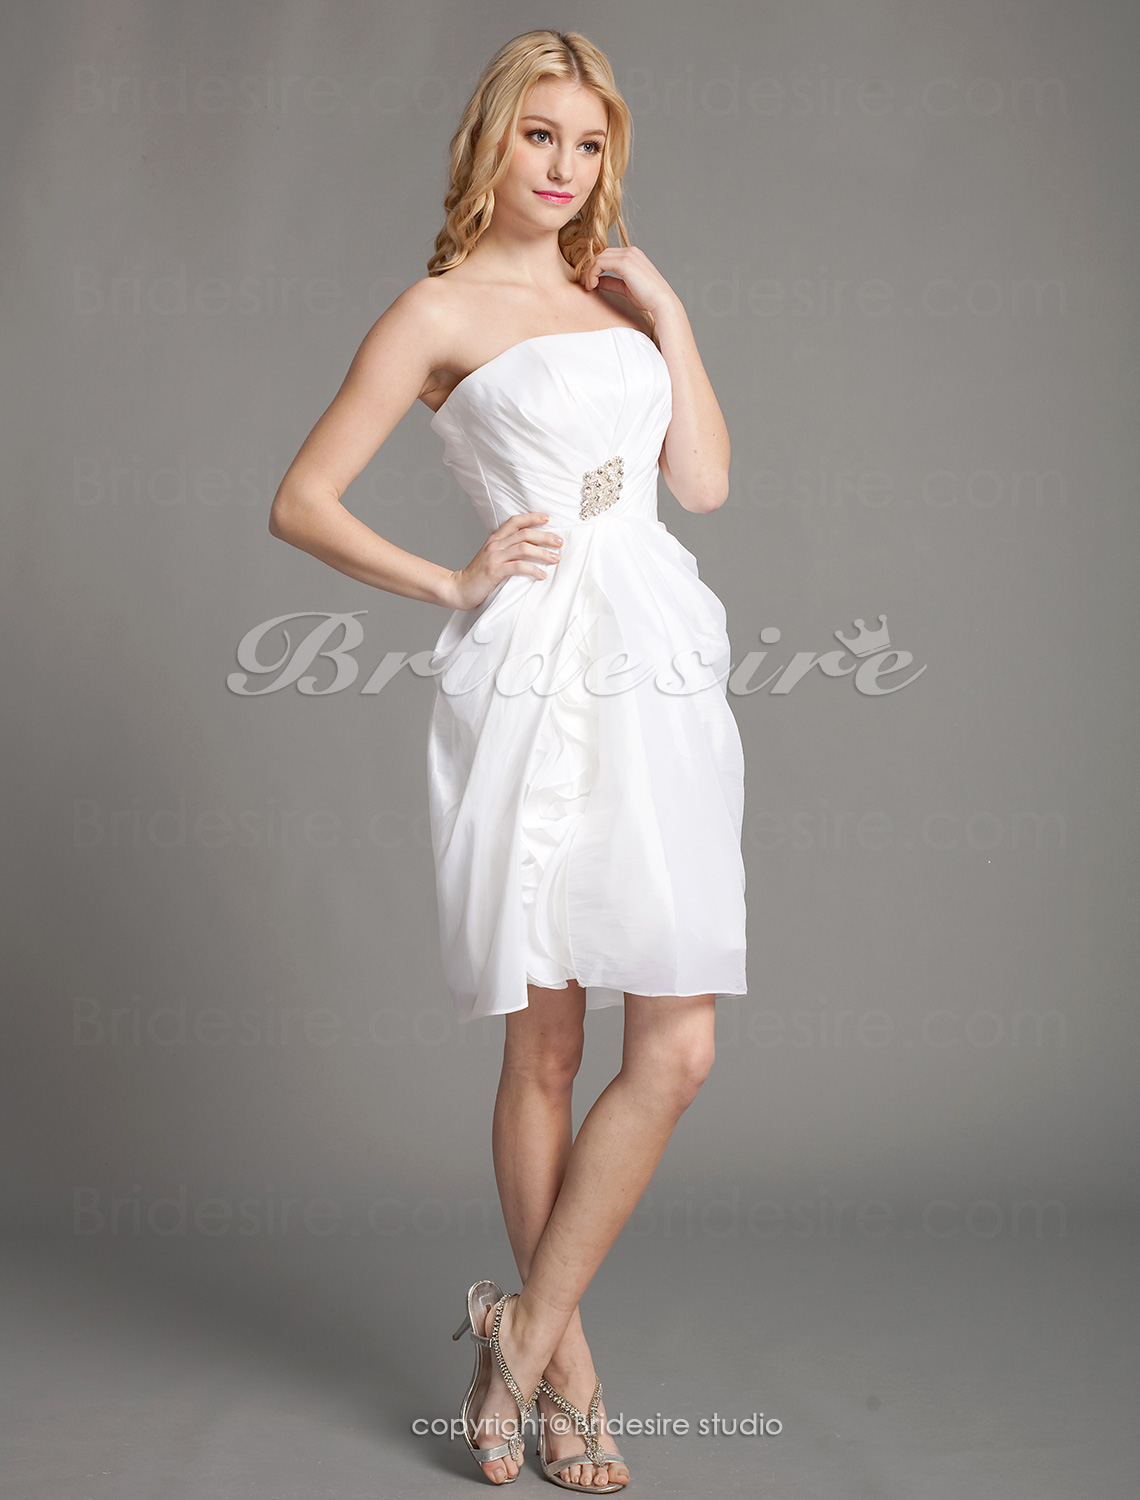 Sheath/Column Taffeta Mini/Short Spaghetti Straps Bridesmaid Dress